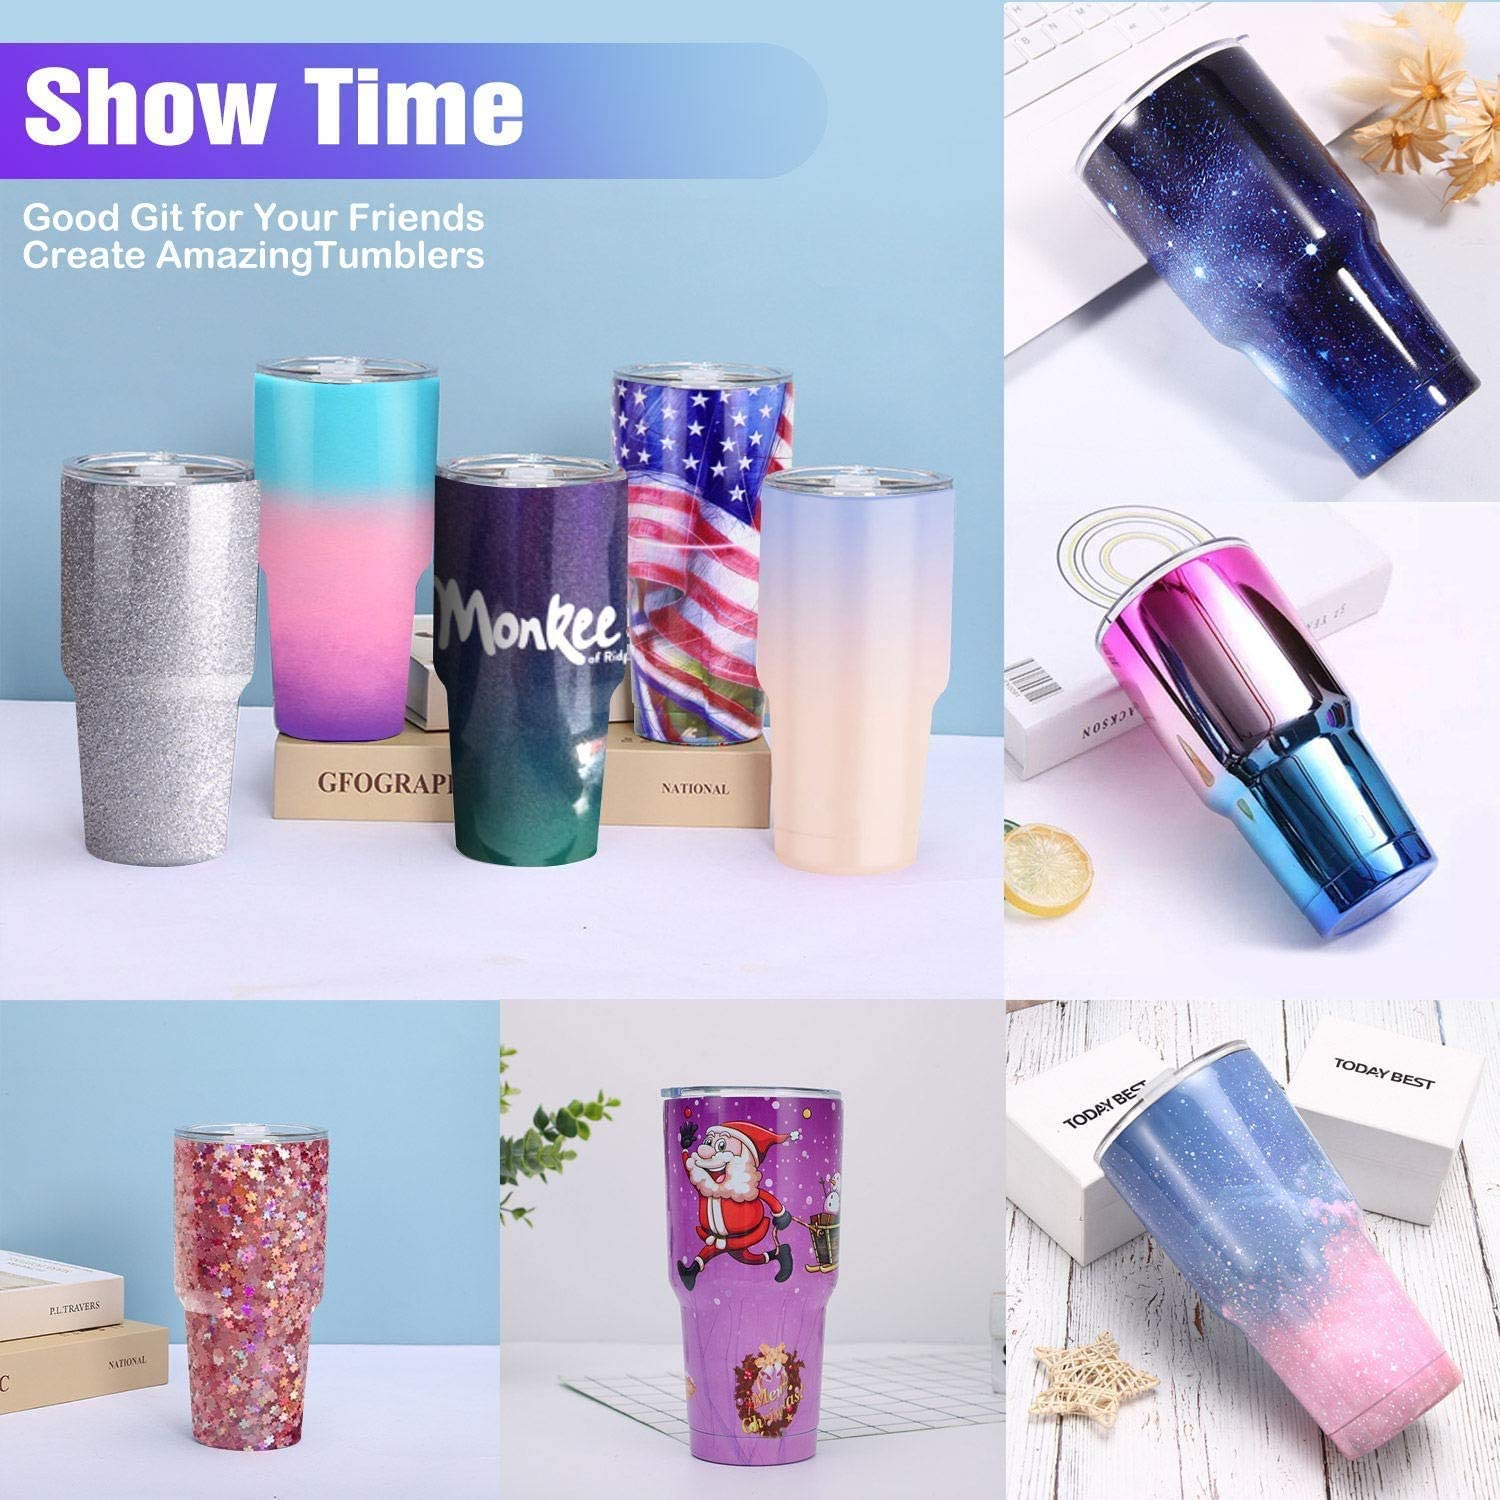 LFSUM Double Cup Turner for Crafts Tumbler Cup Spinner Machine Kit,Turner DIY Glitter Epoxy Tumblers Purple